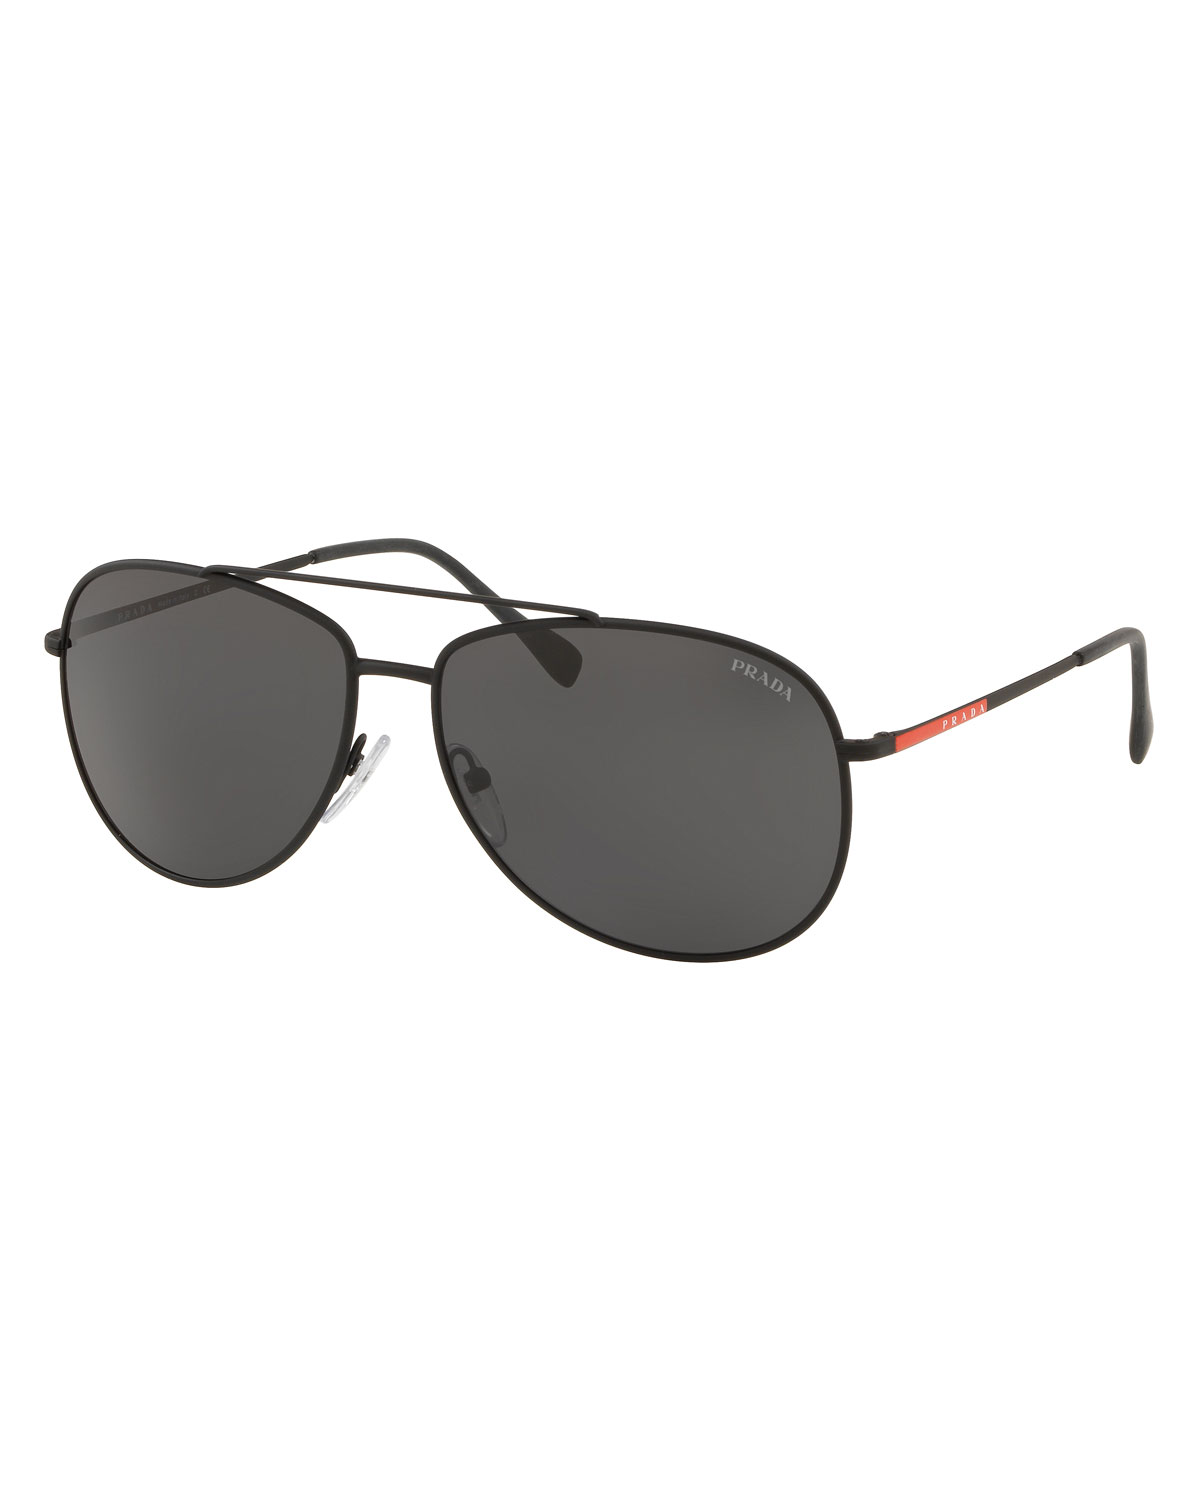 d885bdf2b4b0 Prada Men s Metal Aviator Sunglasses